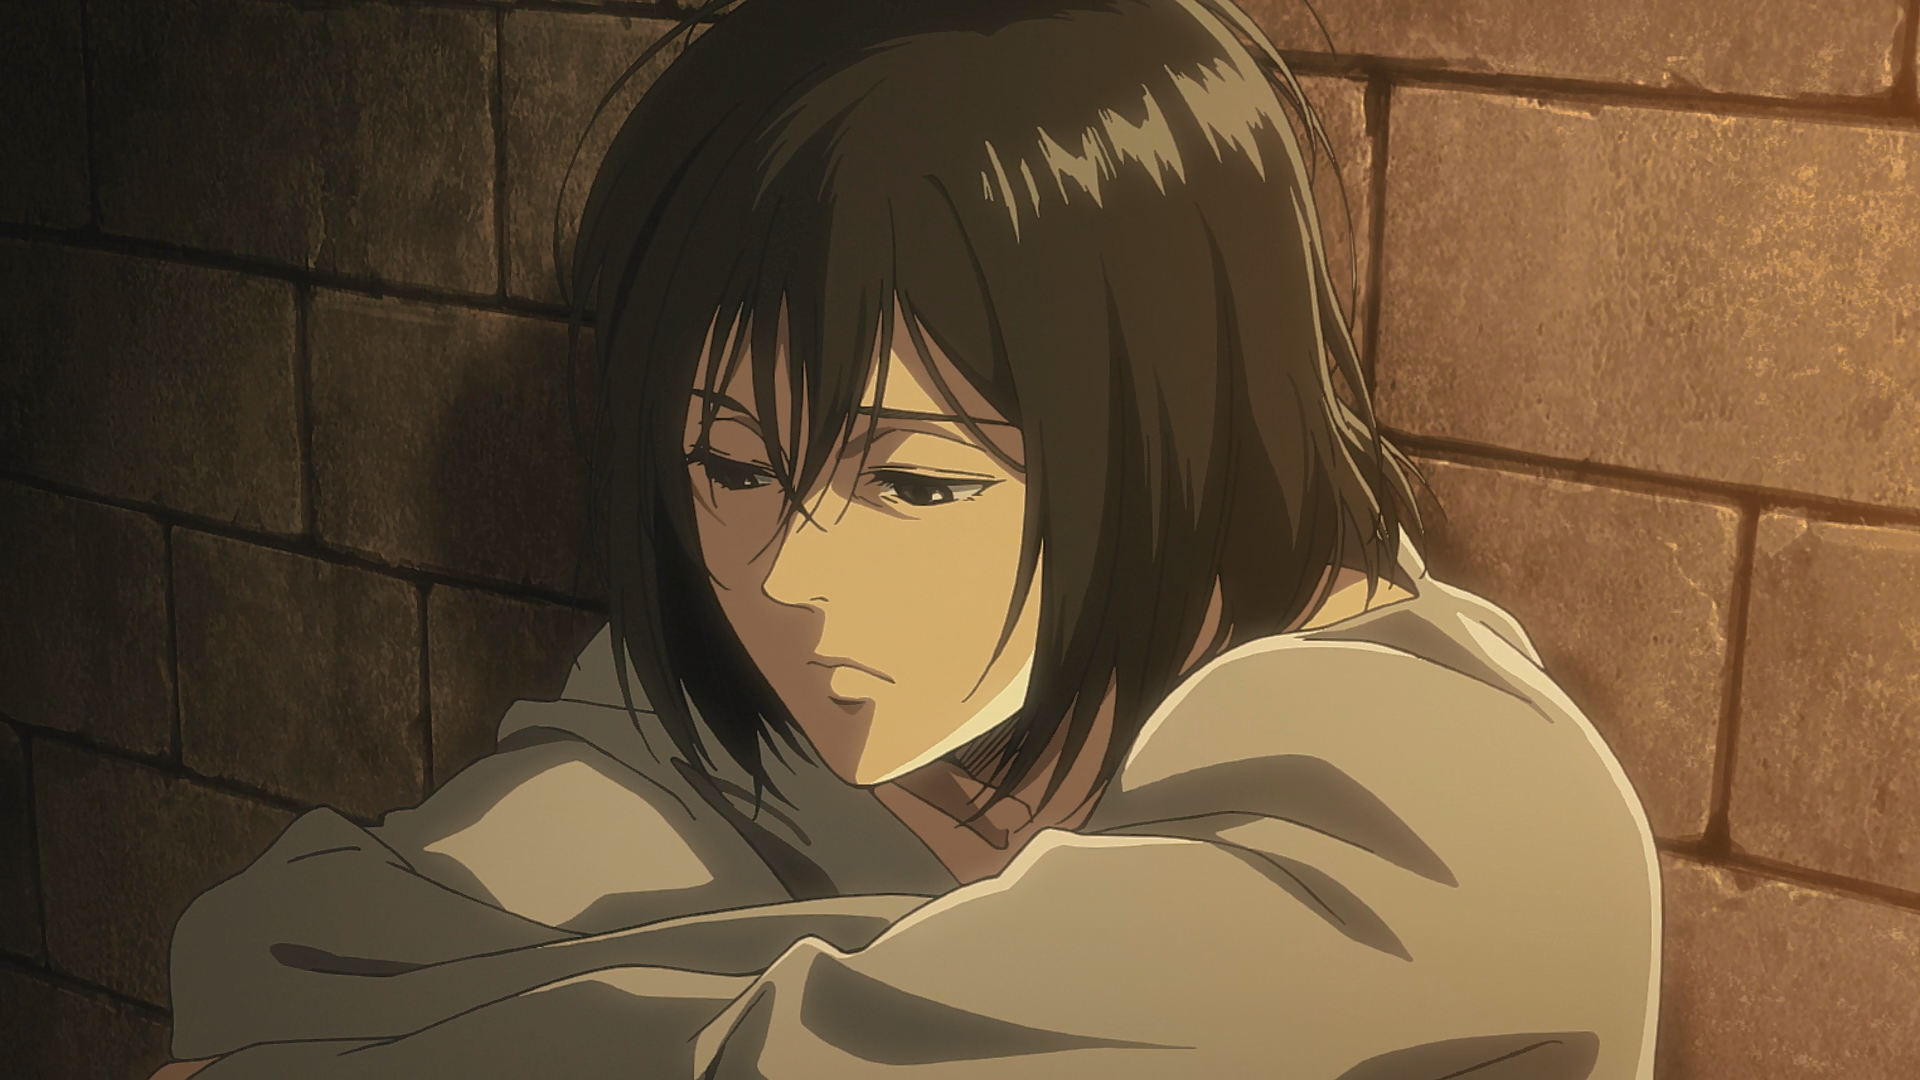 Mikasa refuses to believe the curse Attack on titan